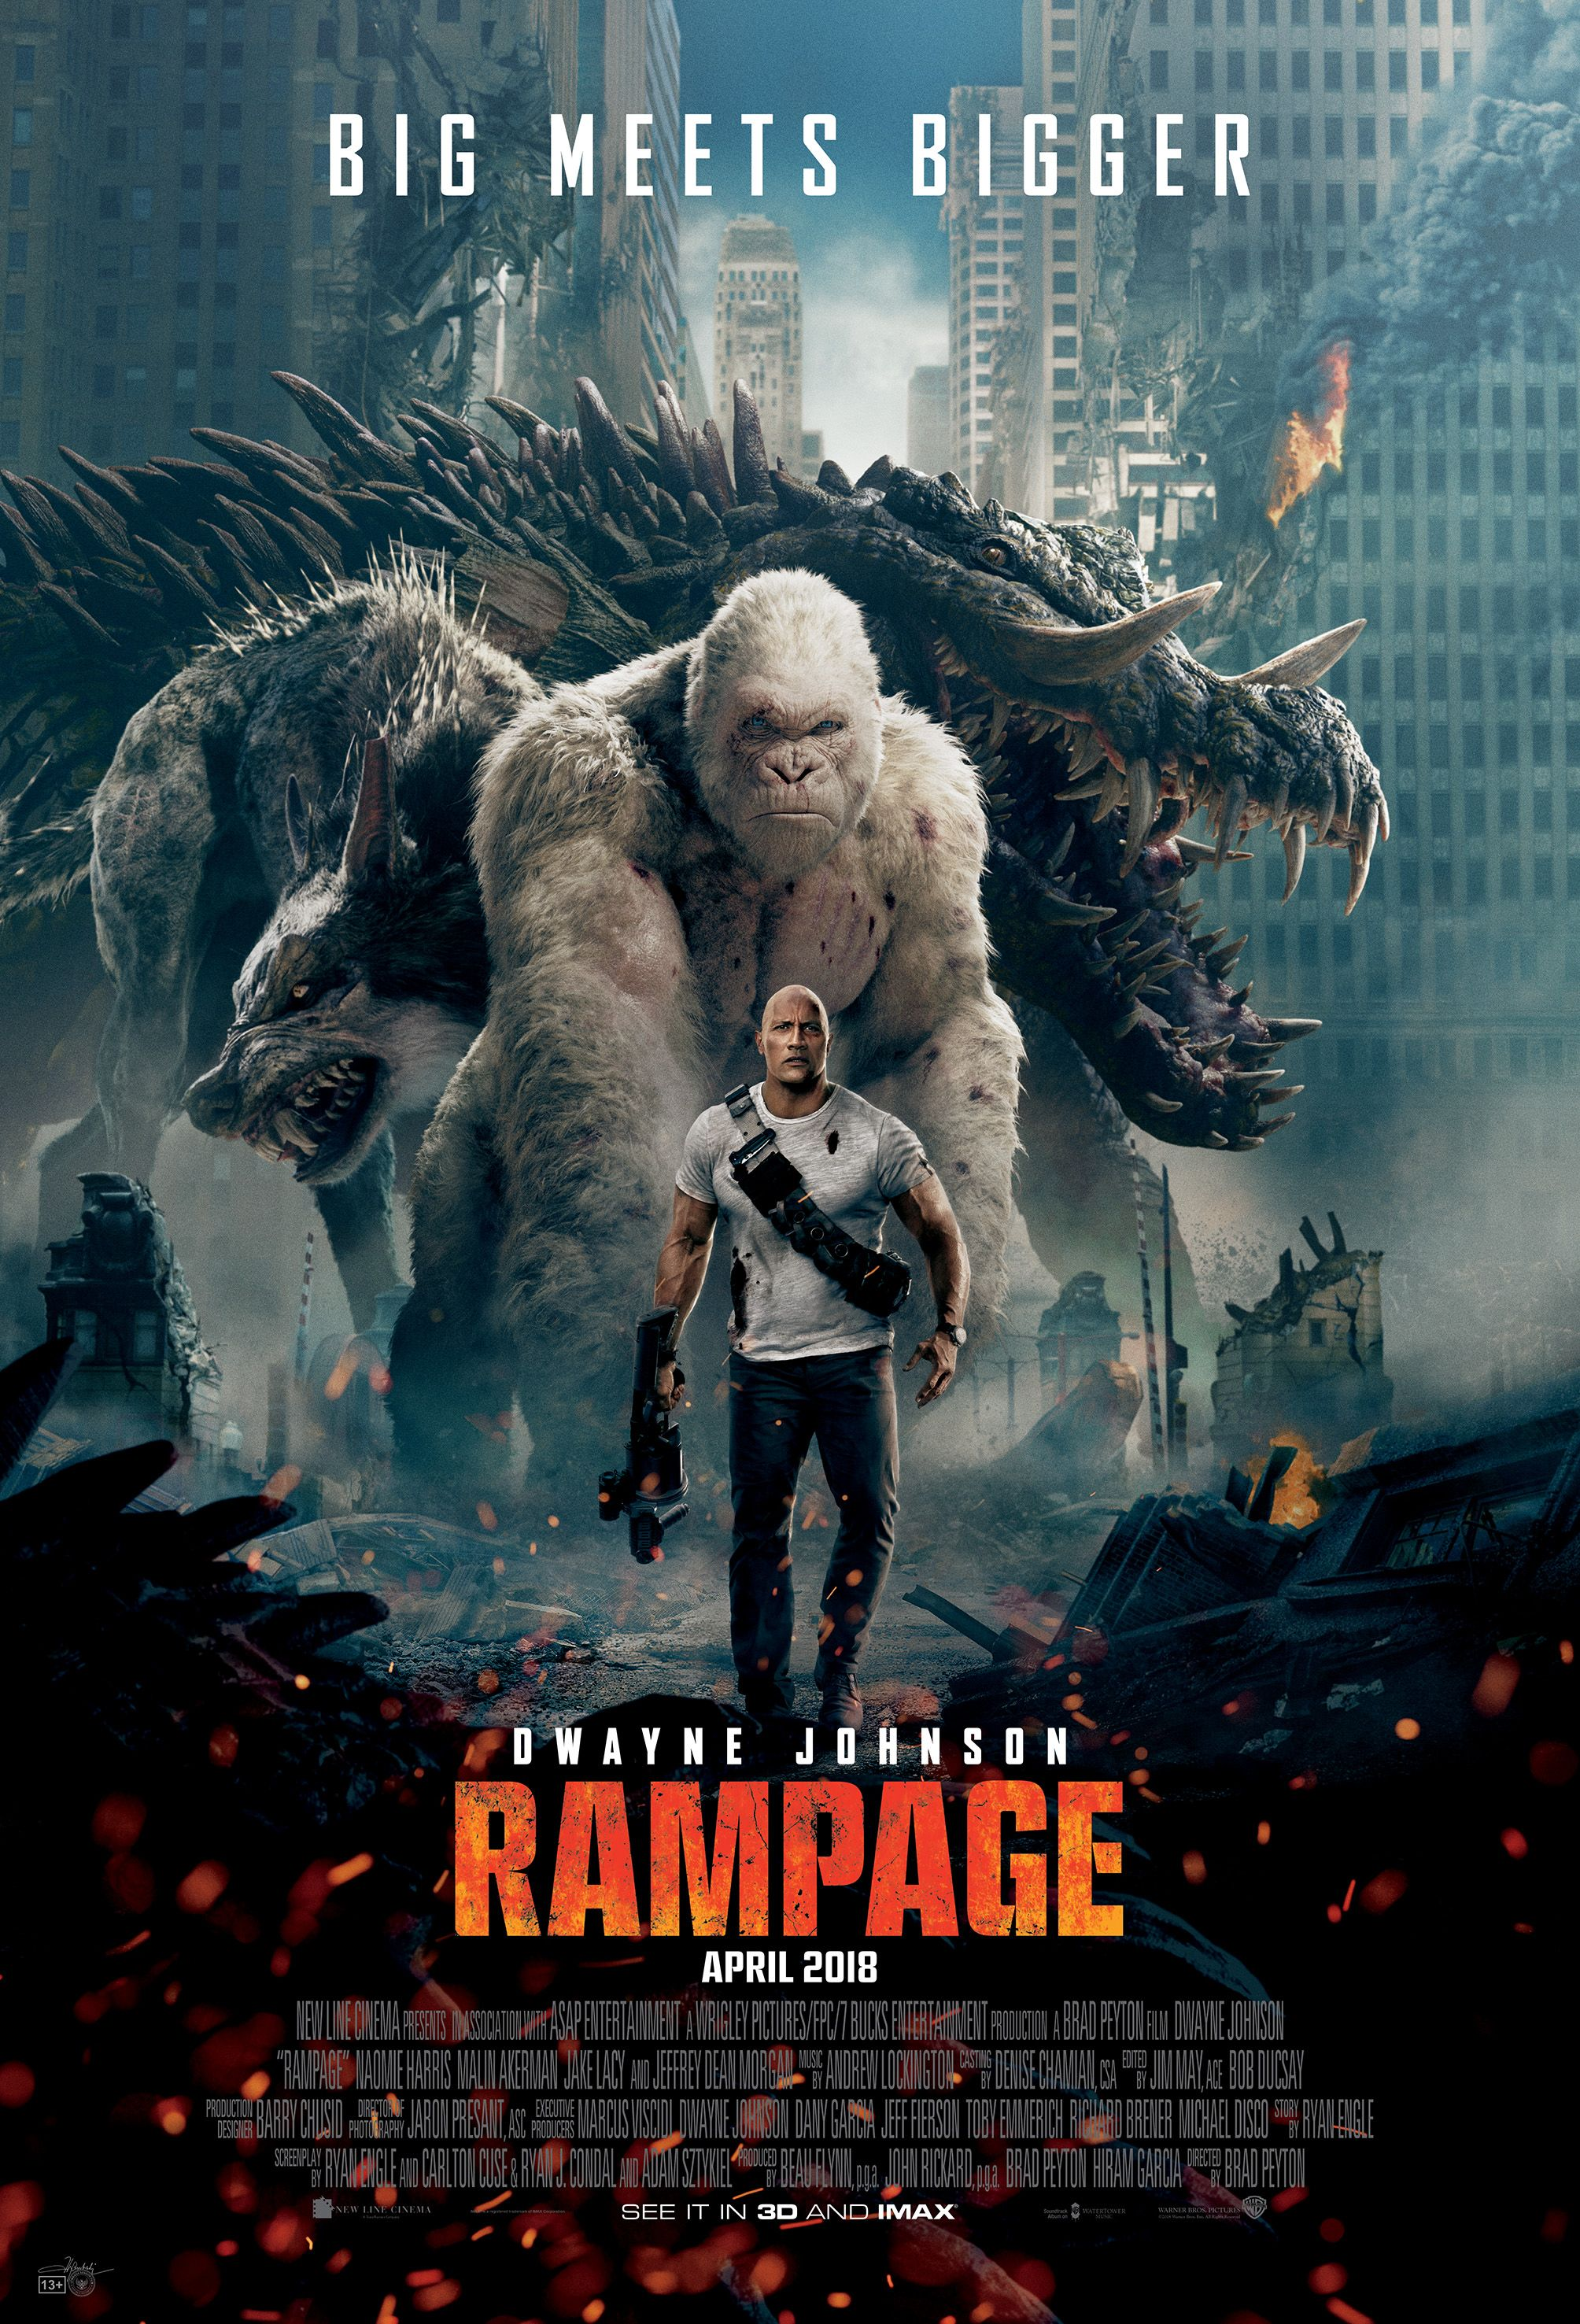 7 Bucks Entertainment Asap Entertainment Flynn Picture Company New Line Cinema Twisted Media Wrigley Picture Rampage Movie Film Rampage Full Movies Online Free